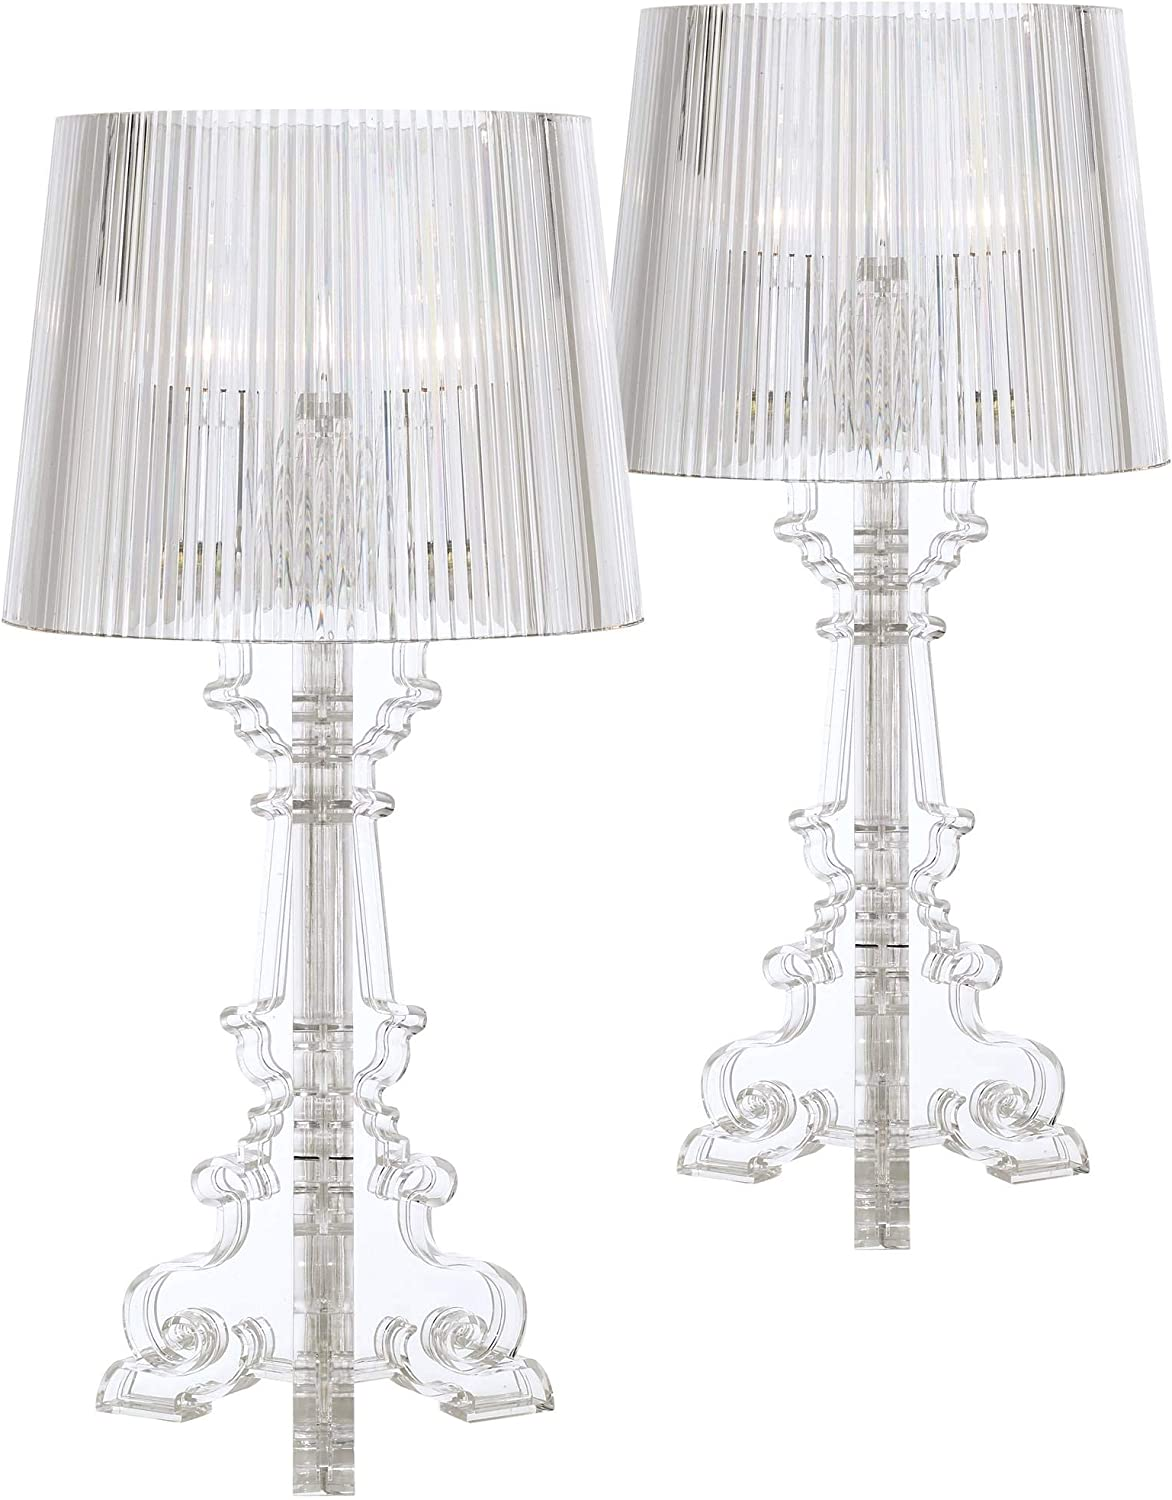 Baroque Accent Table Lamps Set of 2 Clear Acrylic See Through for Living Room Family Bedroom Bedside Nightstand - 360 Lighting